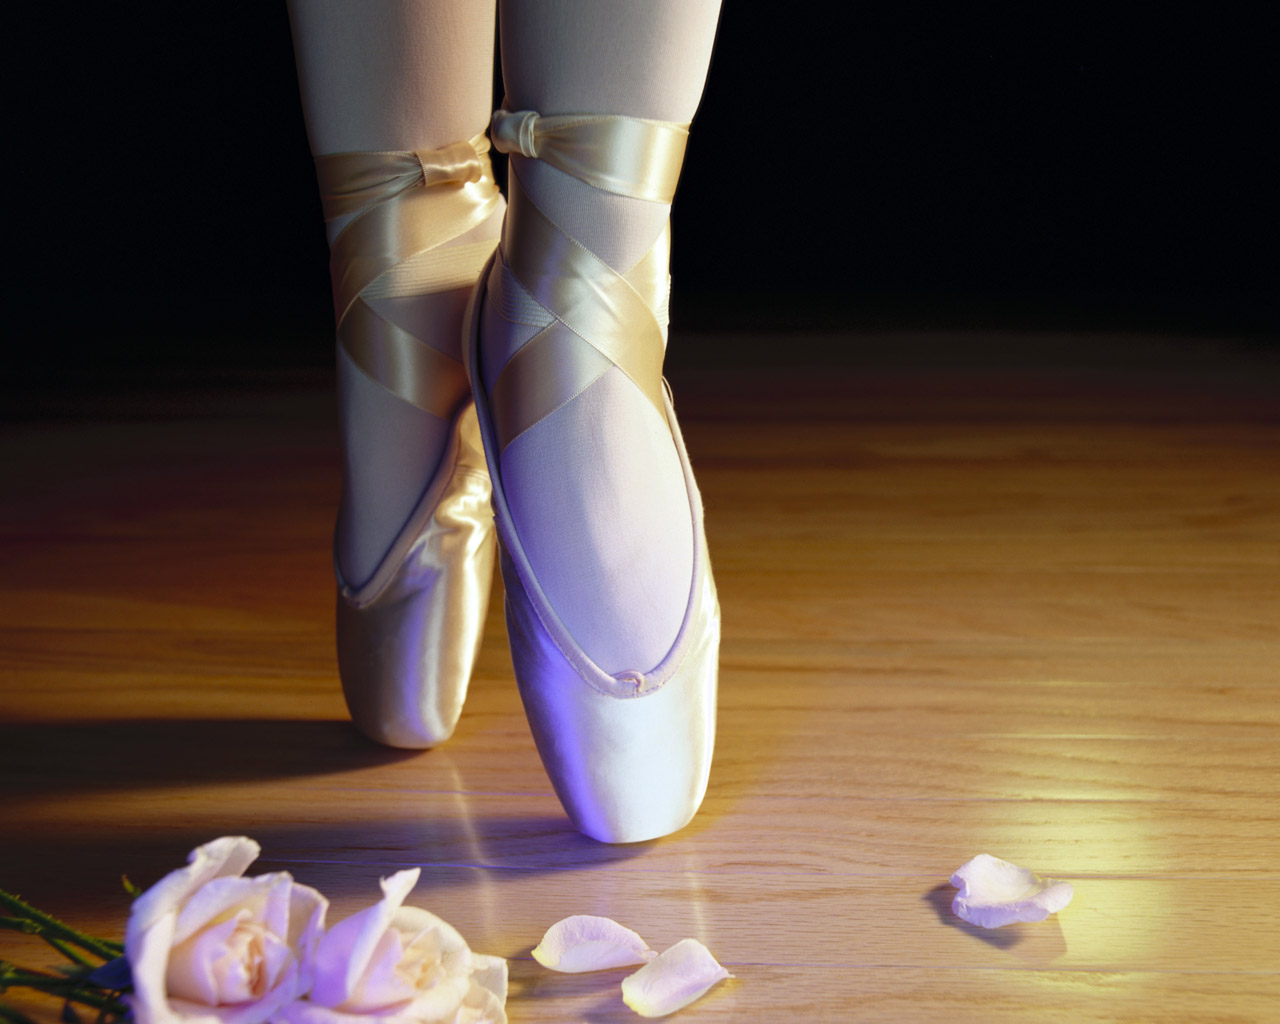 Ballet Dance Backgrounds Images amp Pictures   Becuo 1280x1024